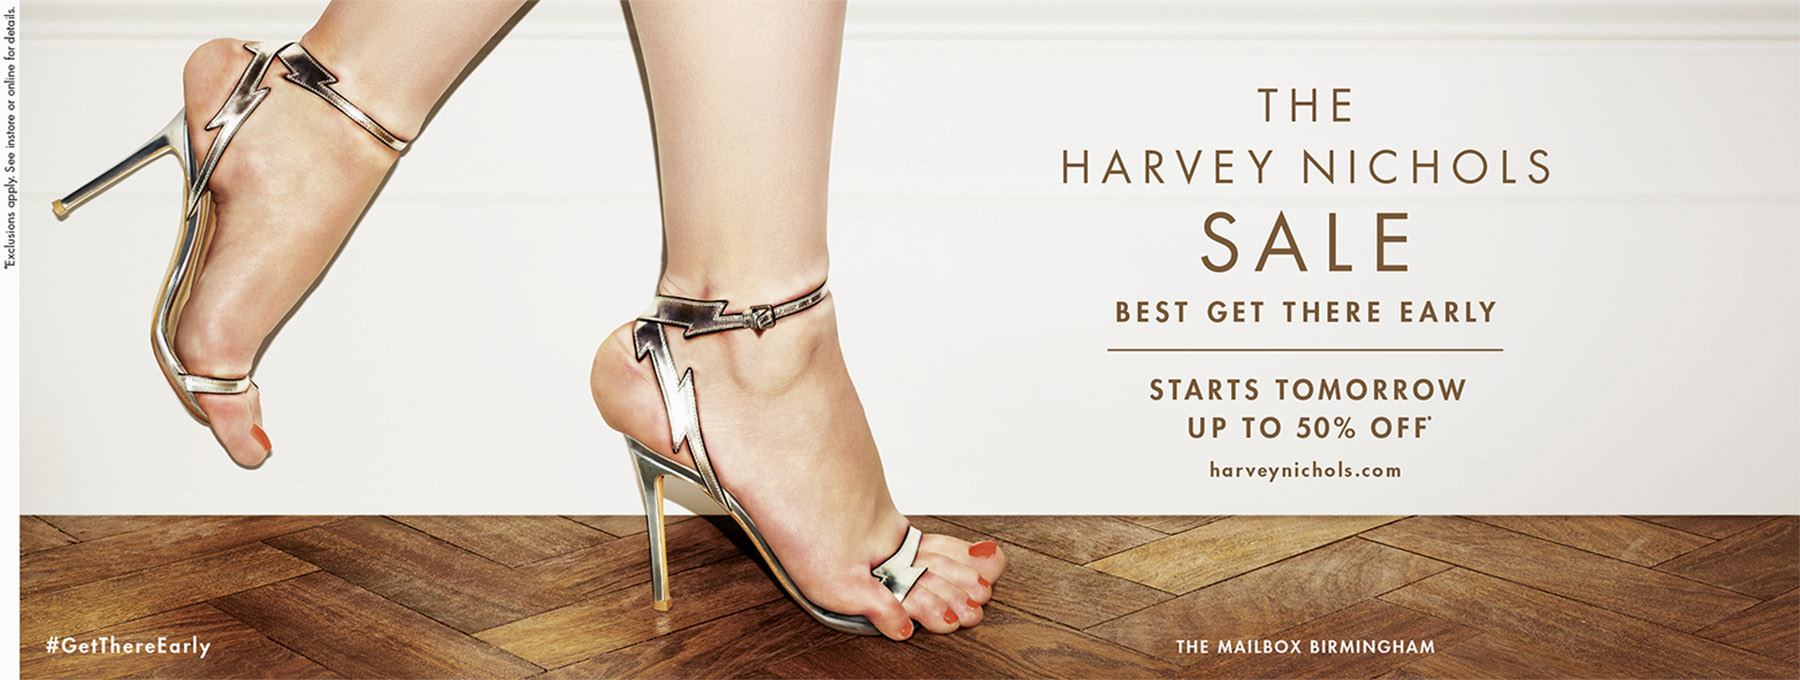 KH4037_HN_BEST_GET_THERE_EARLY_SHOES_100X265_BIRM_MAIL